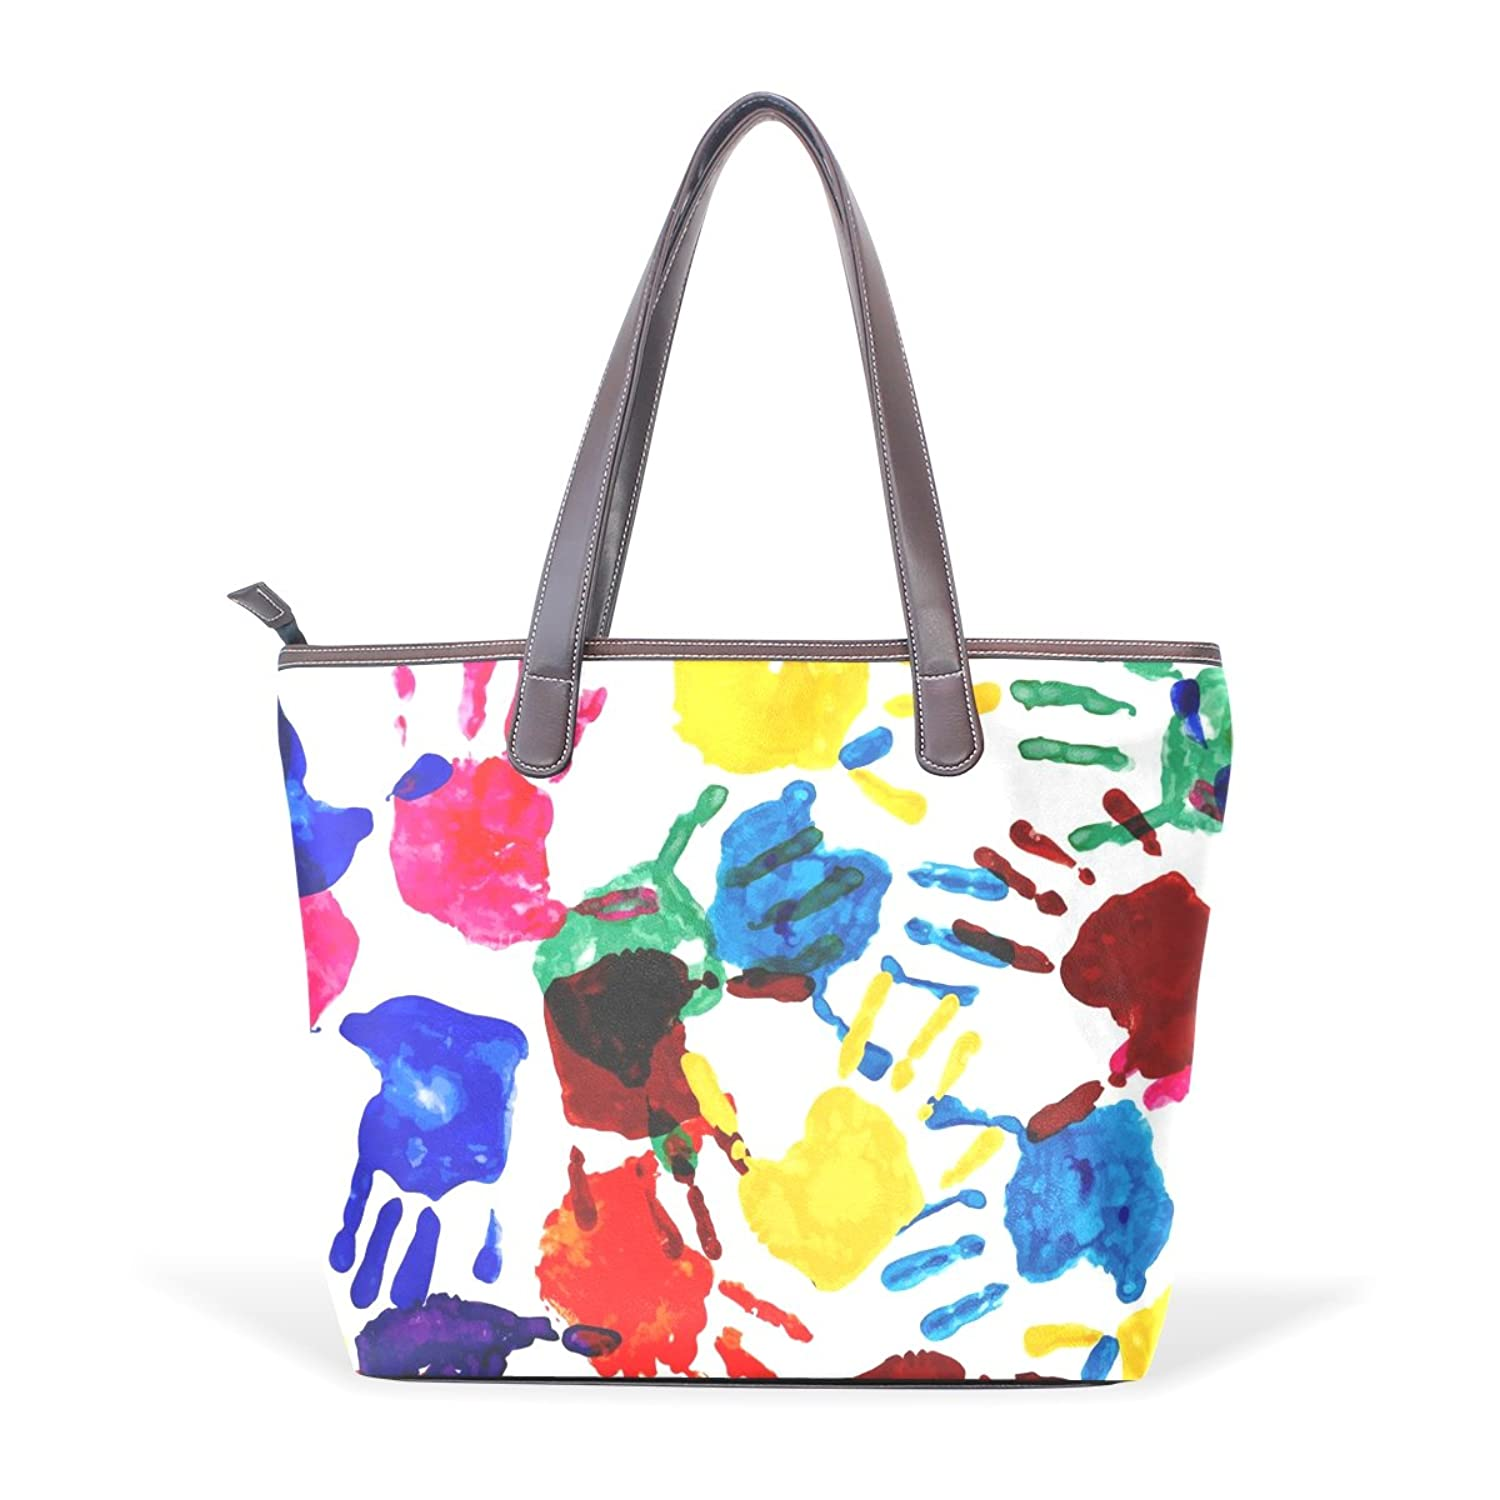 Womens Leather Tote Bag,Art Pigment Graffiti Finger,Large Handbag